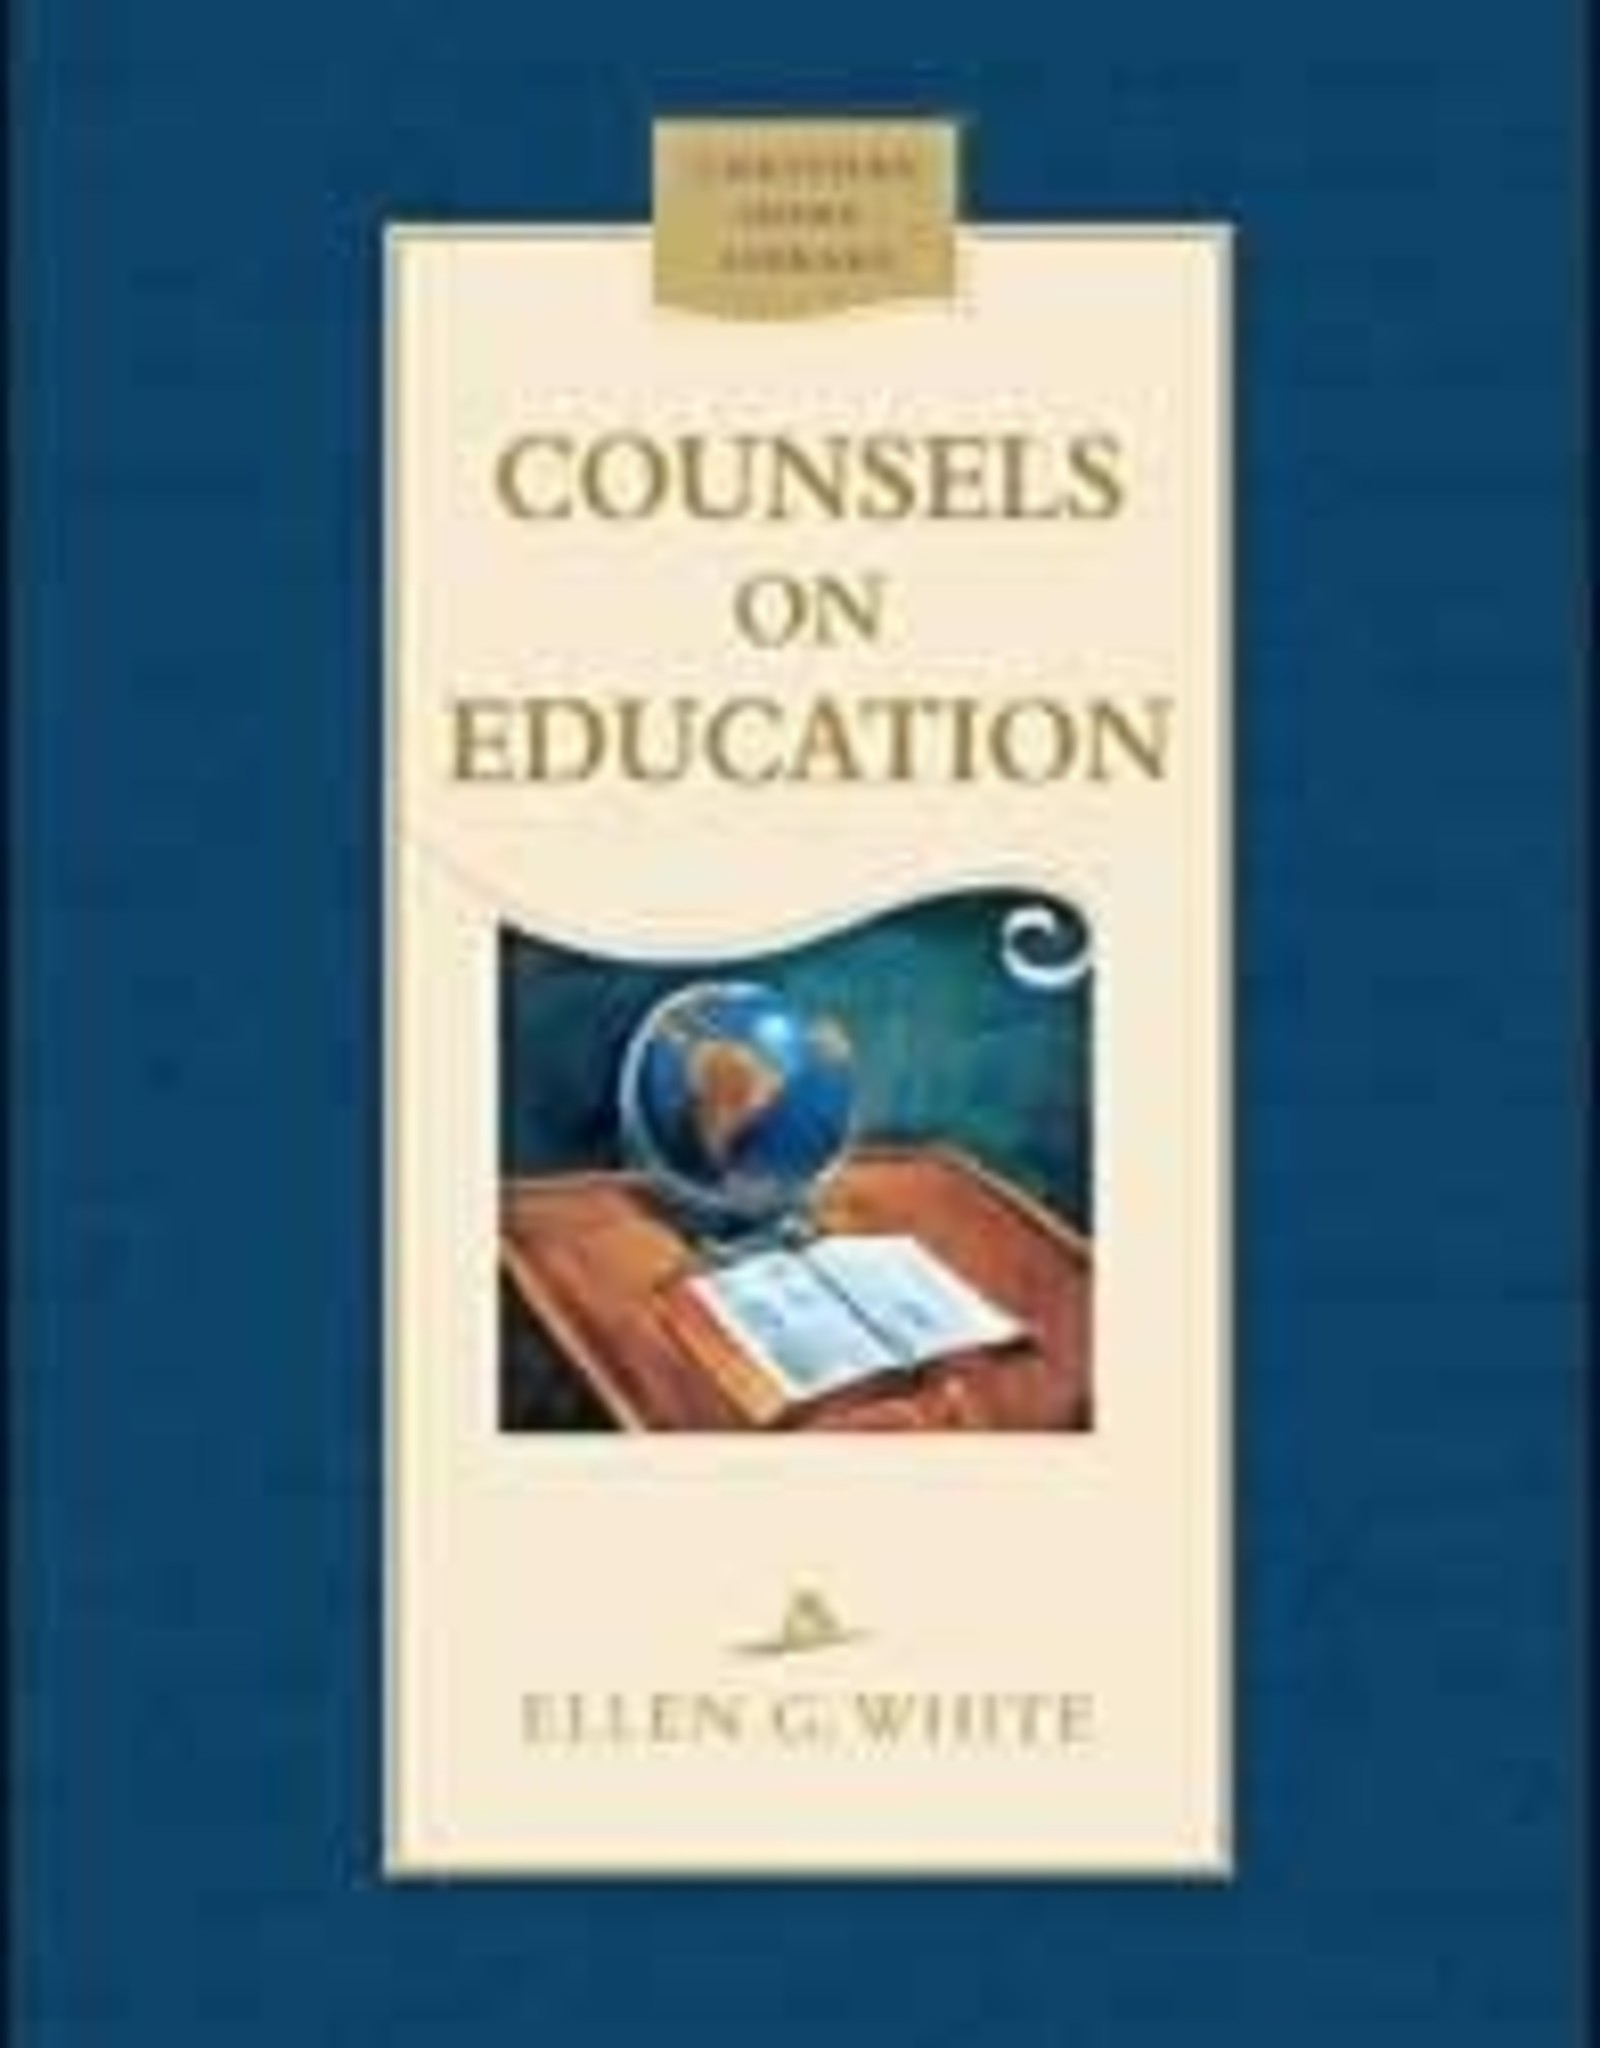 Ellen G.White Counsels on Education